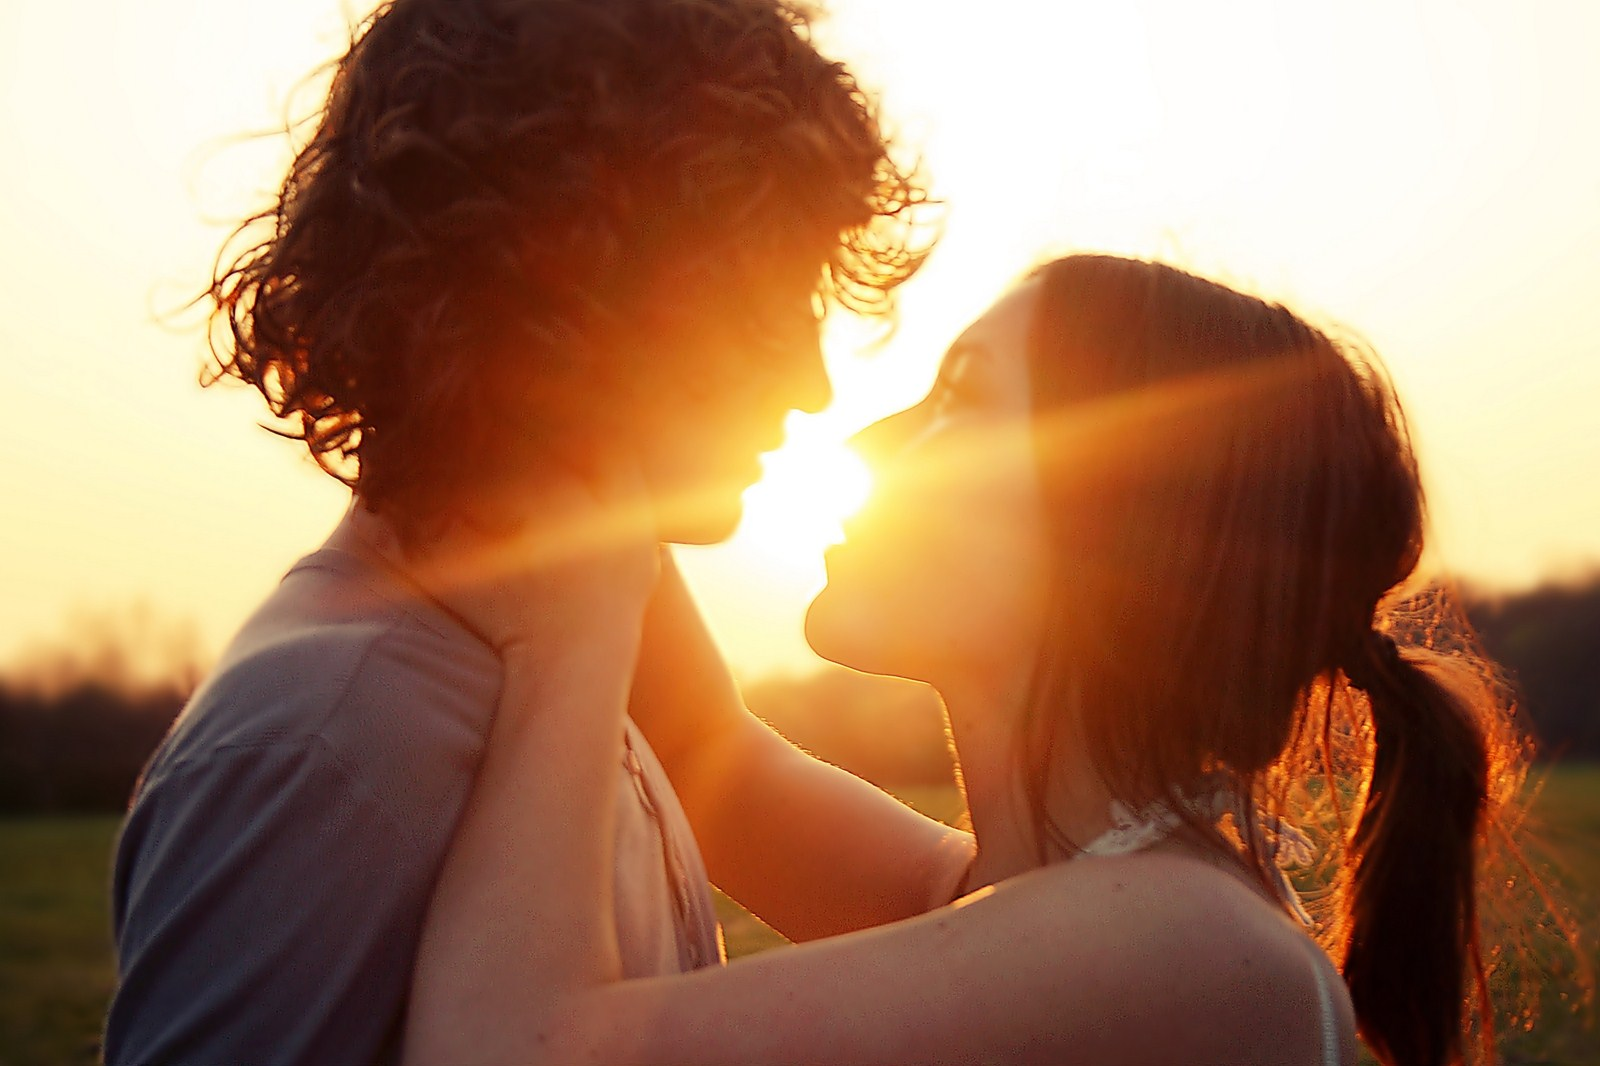 couple kissing wallpapers - photo #31